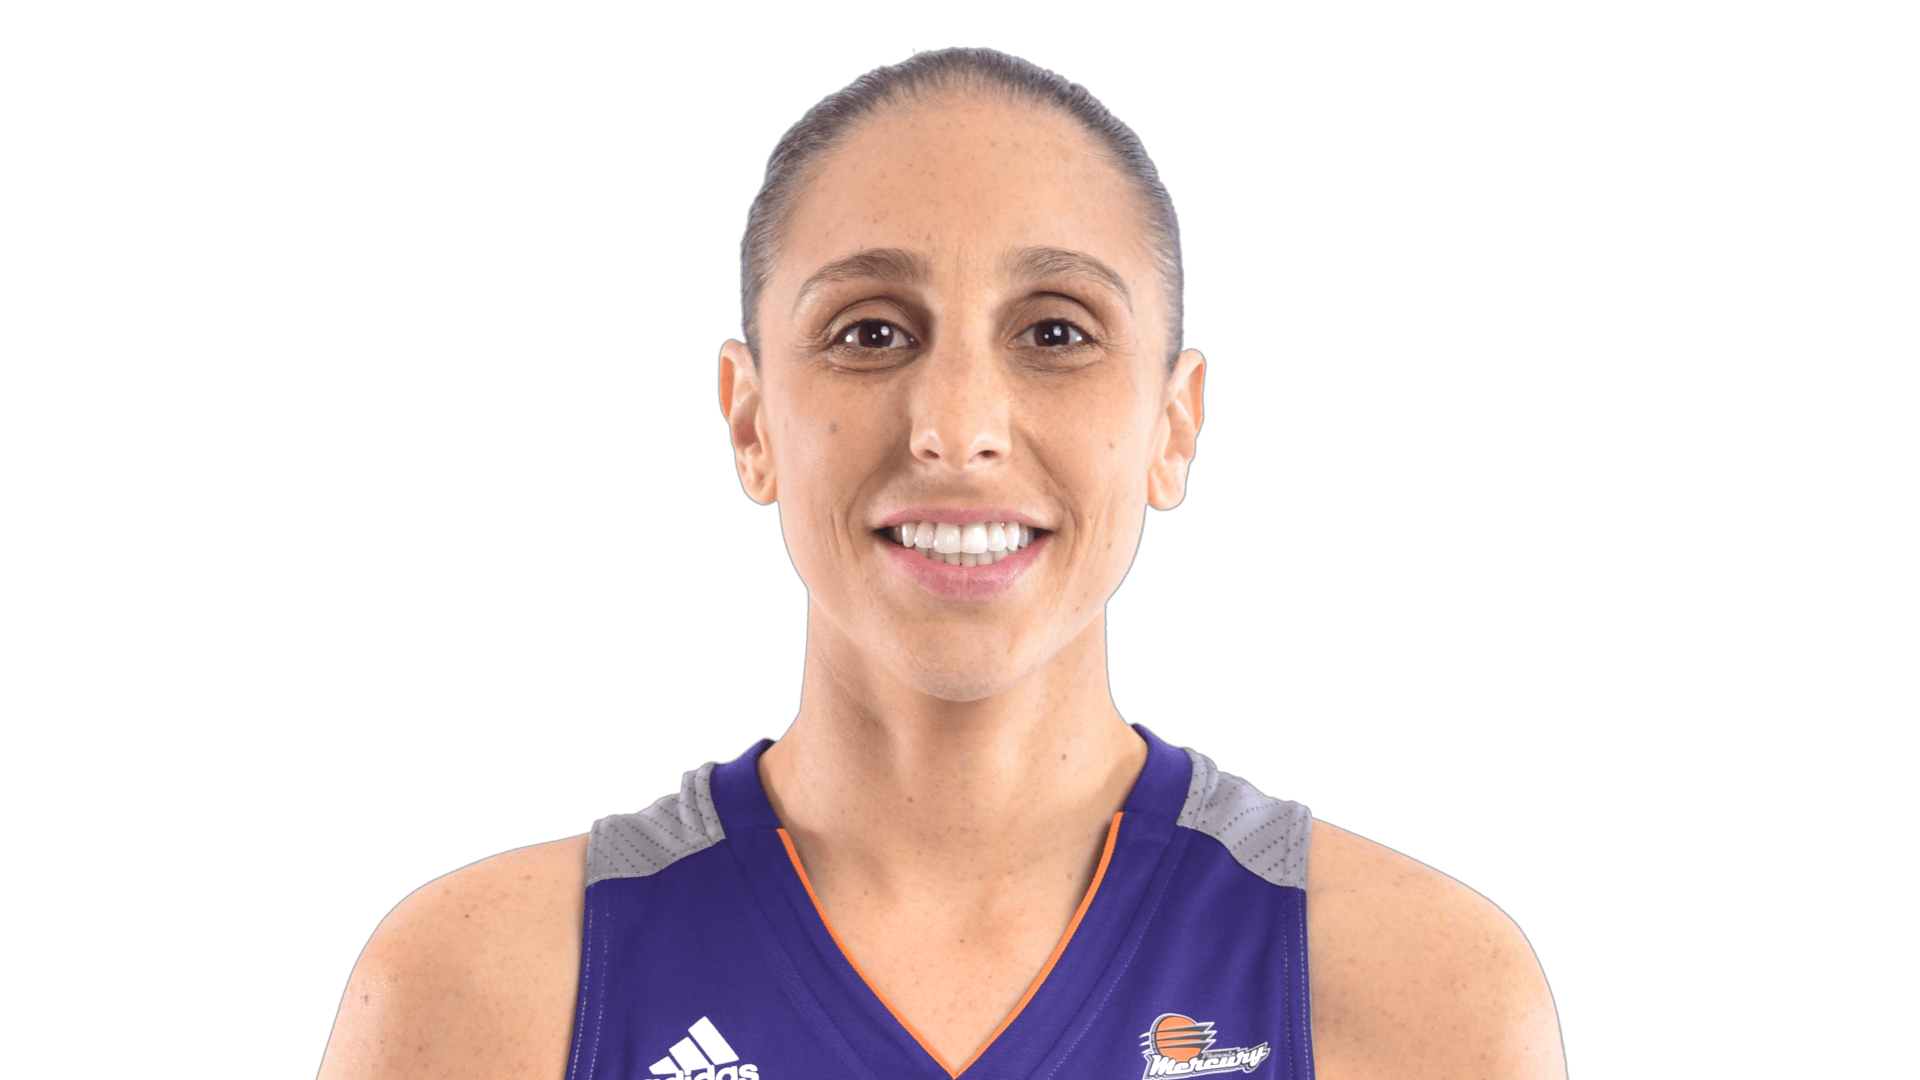 Diana Taurasi signs a multi-year contract extension with the Phoenix Mercury